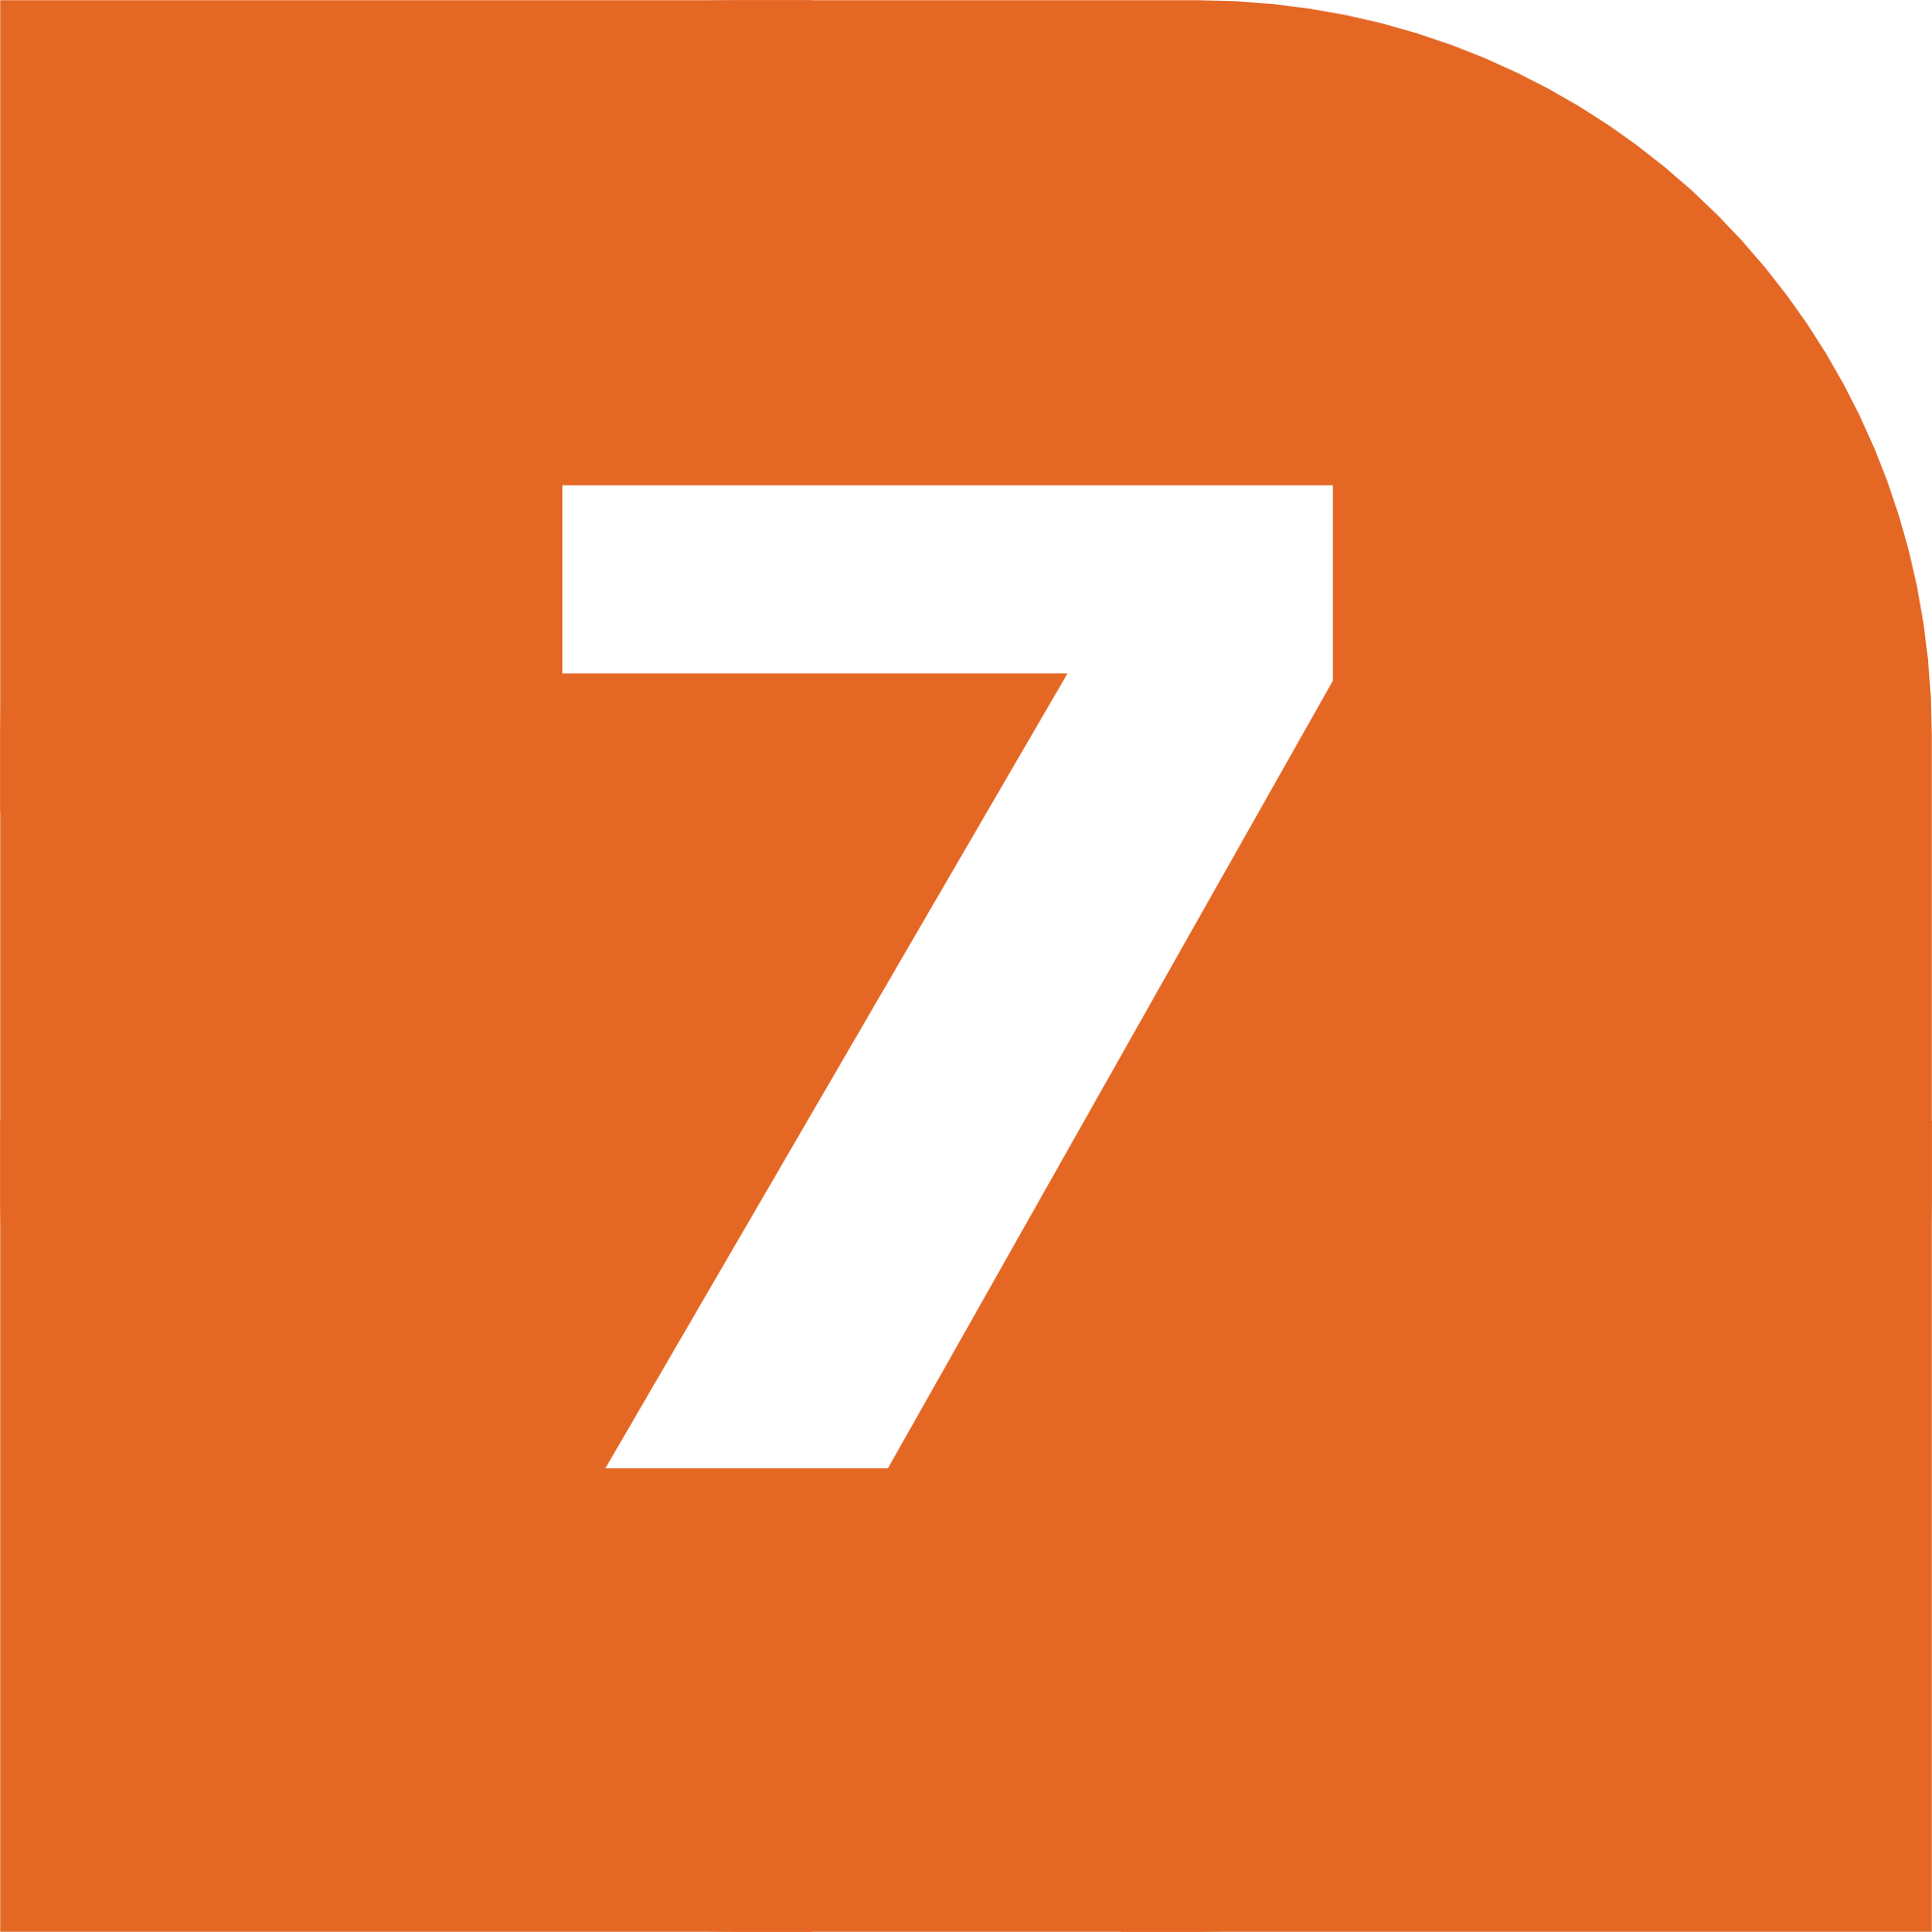 file stc line 7 icon png wikimedia commons